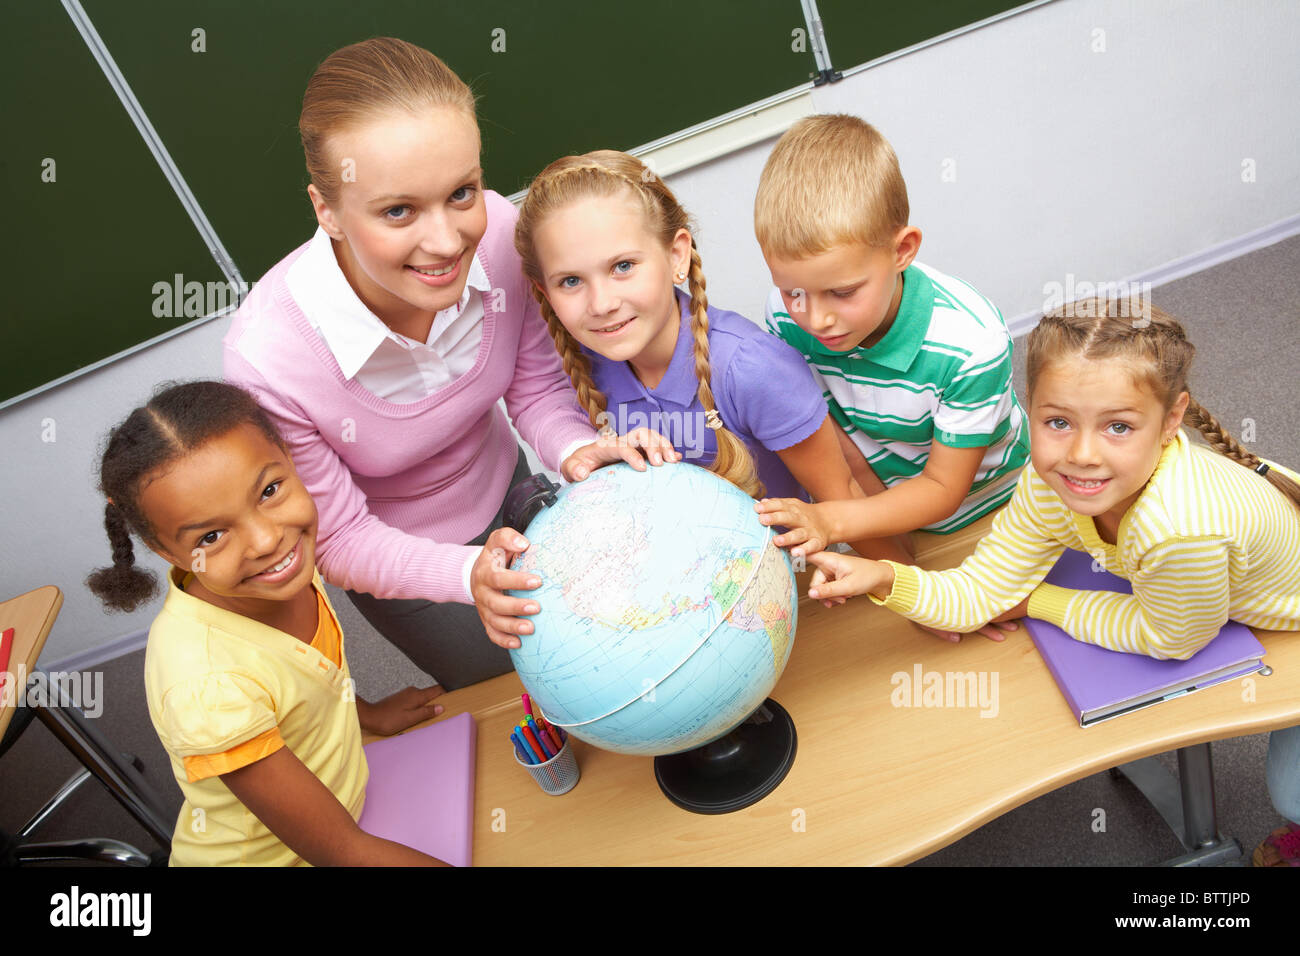 Portrait of pupils and teacher looking at camera with globe on table during geography lesson - Stock Image